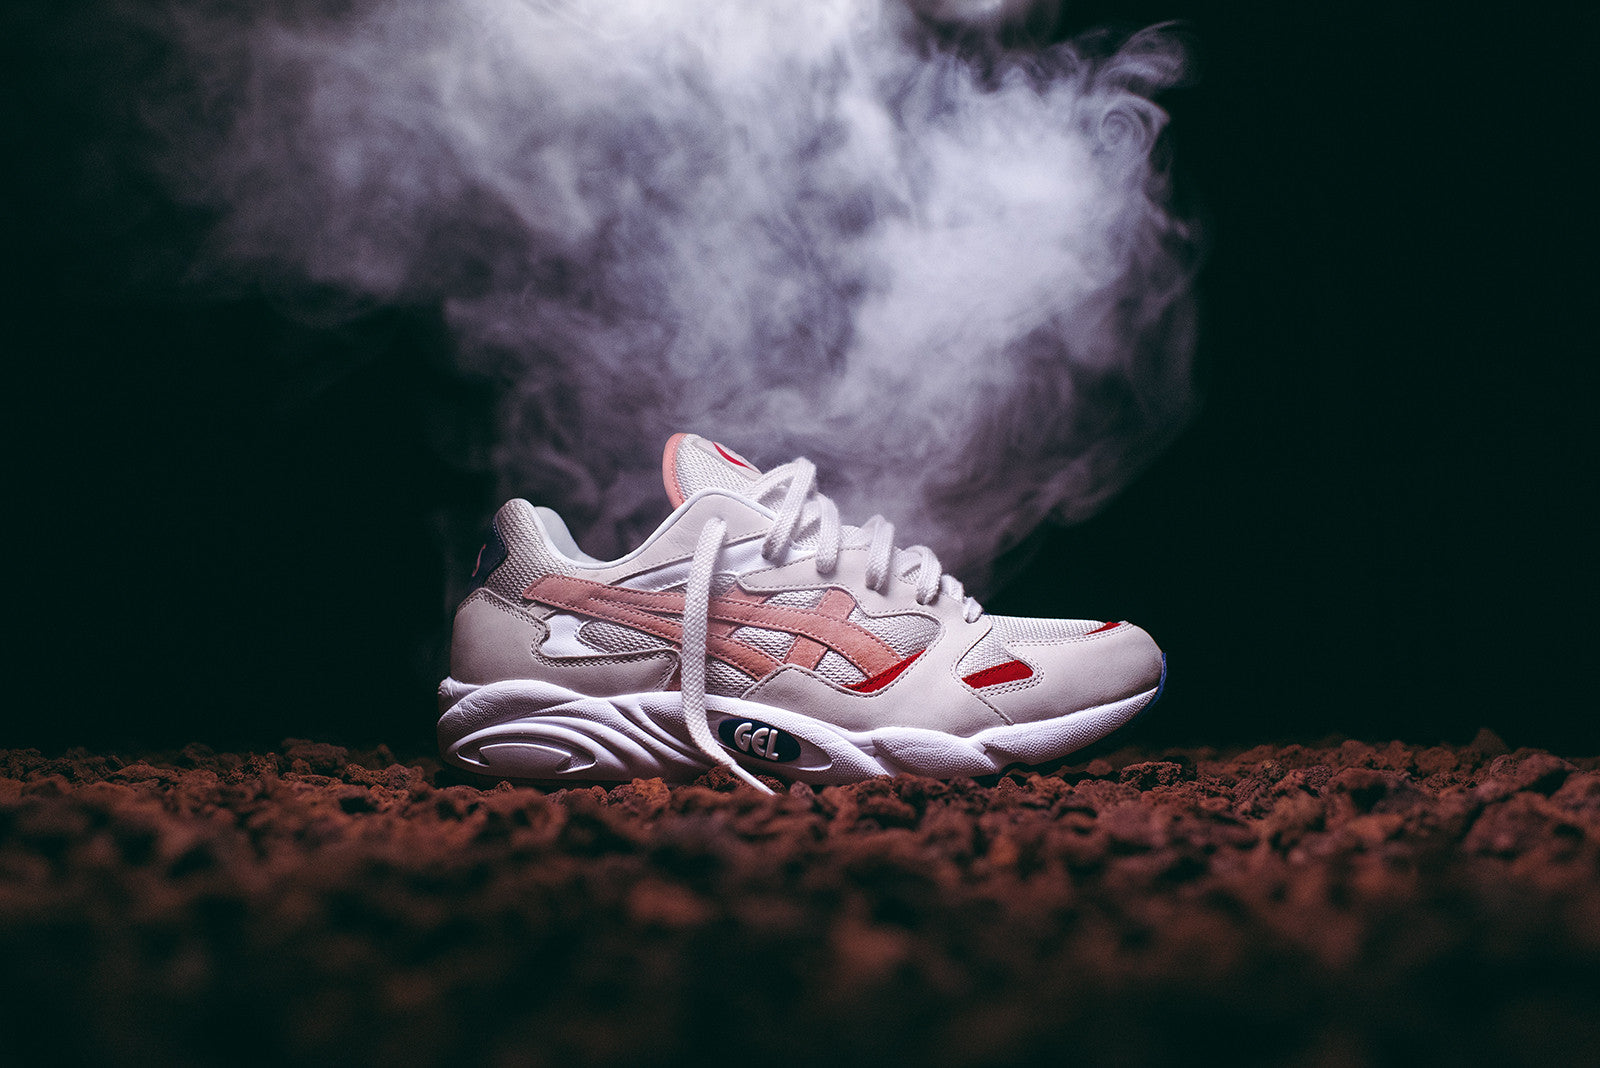 wholesale dealer 7fd0f be7ef Ronnie Fieg x Asics Volcano 2.0 Collection – Kith